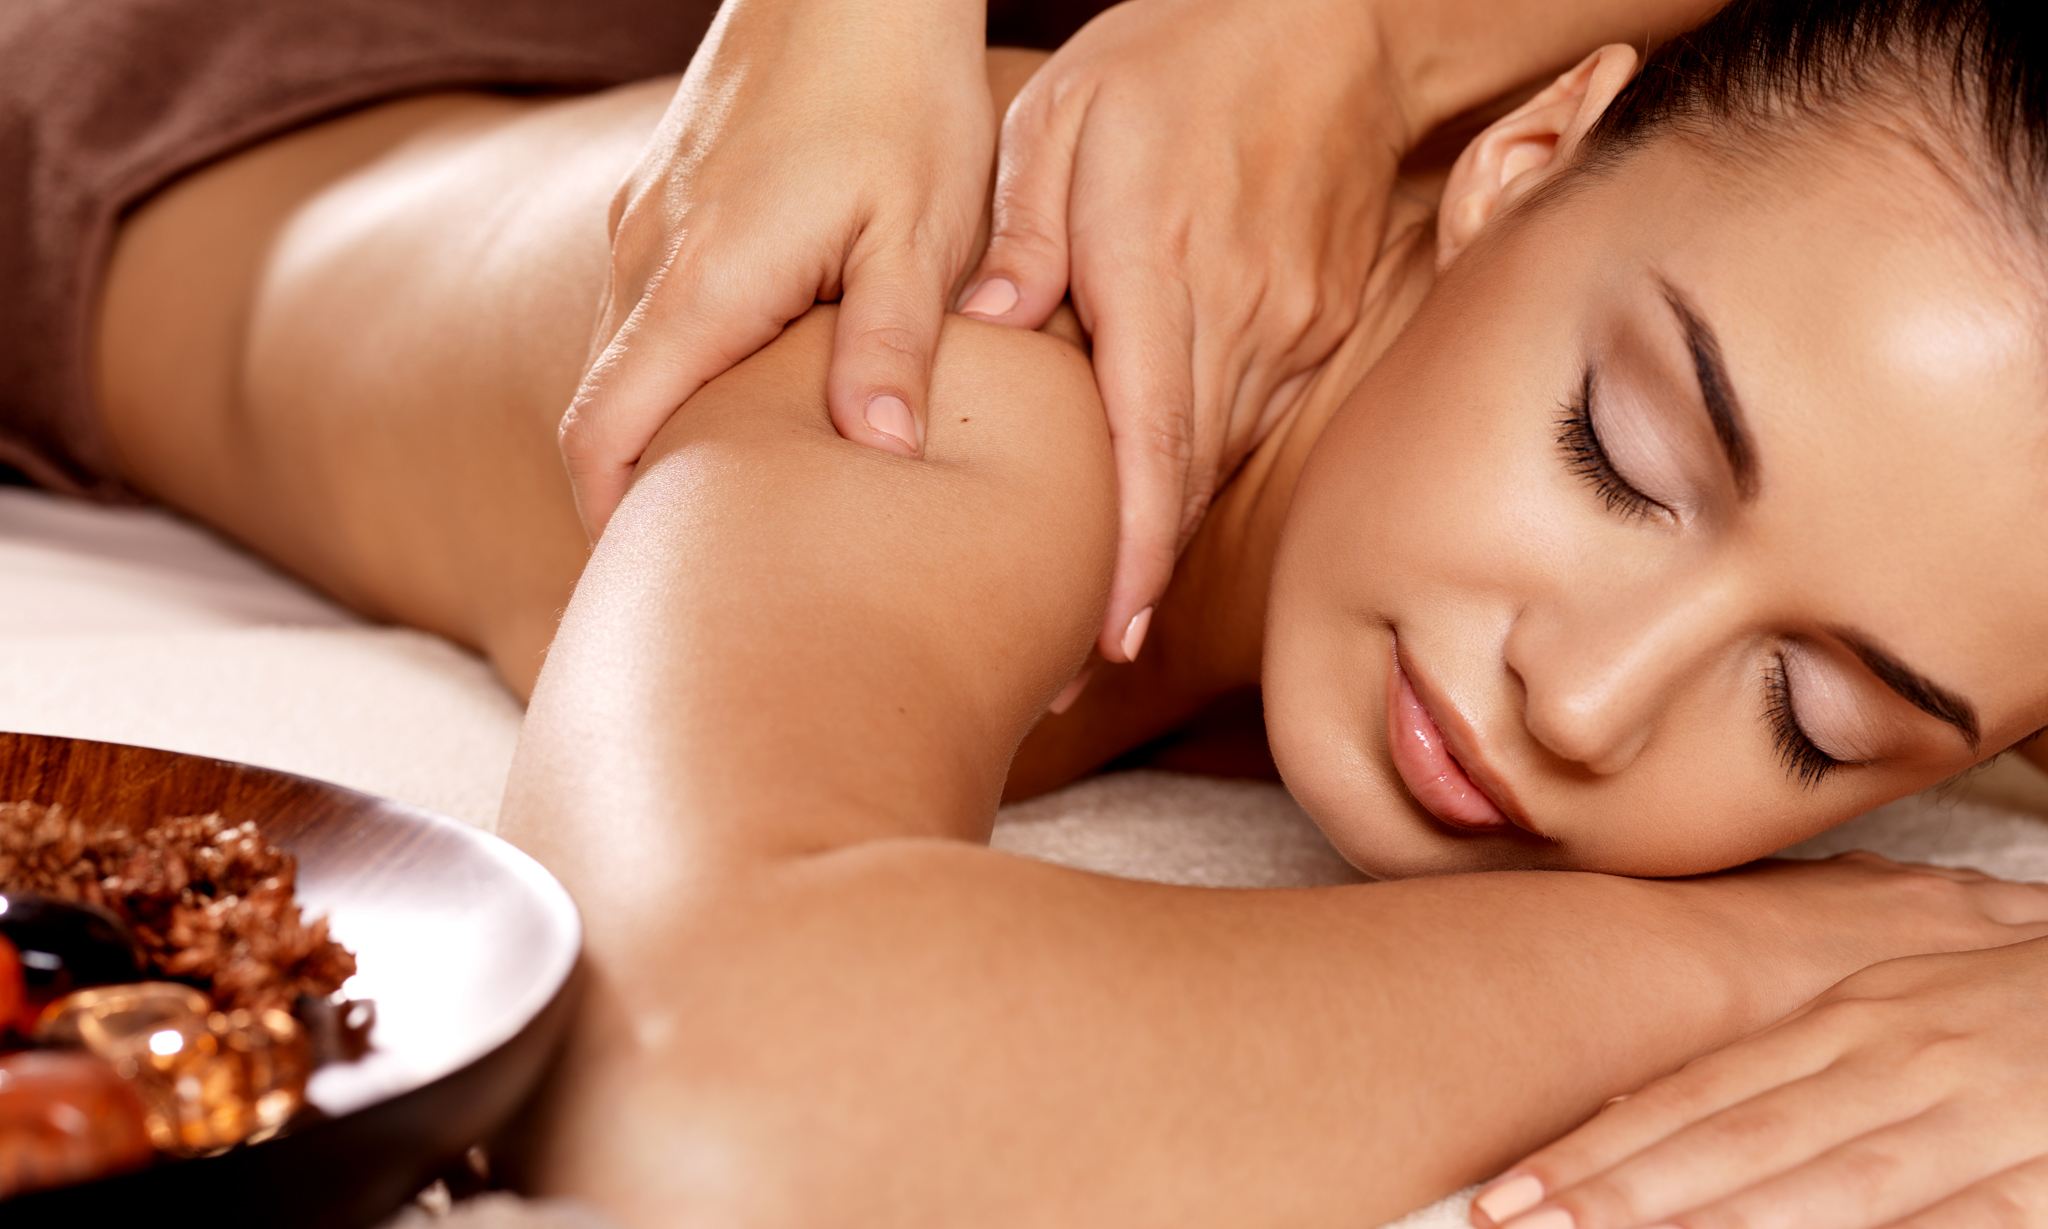 What Are the Top 3 Massage Oils for Body Massage Suggested by Therapists